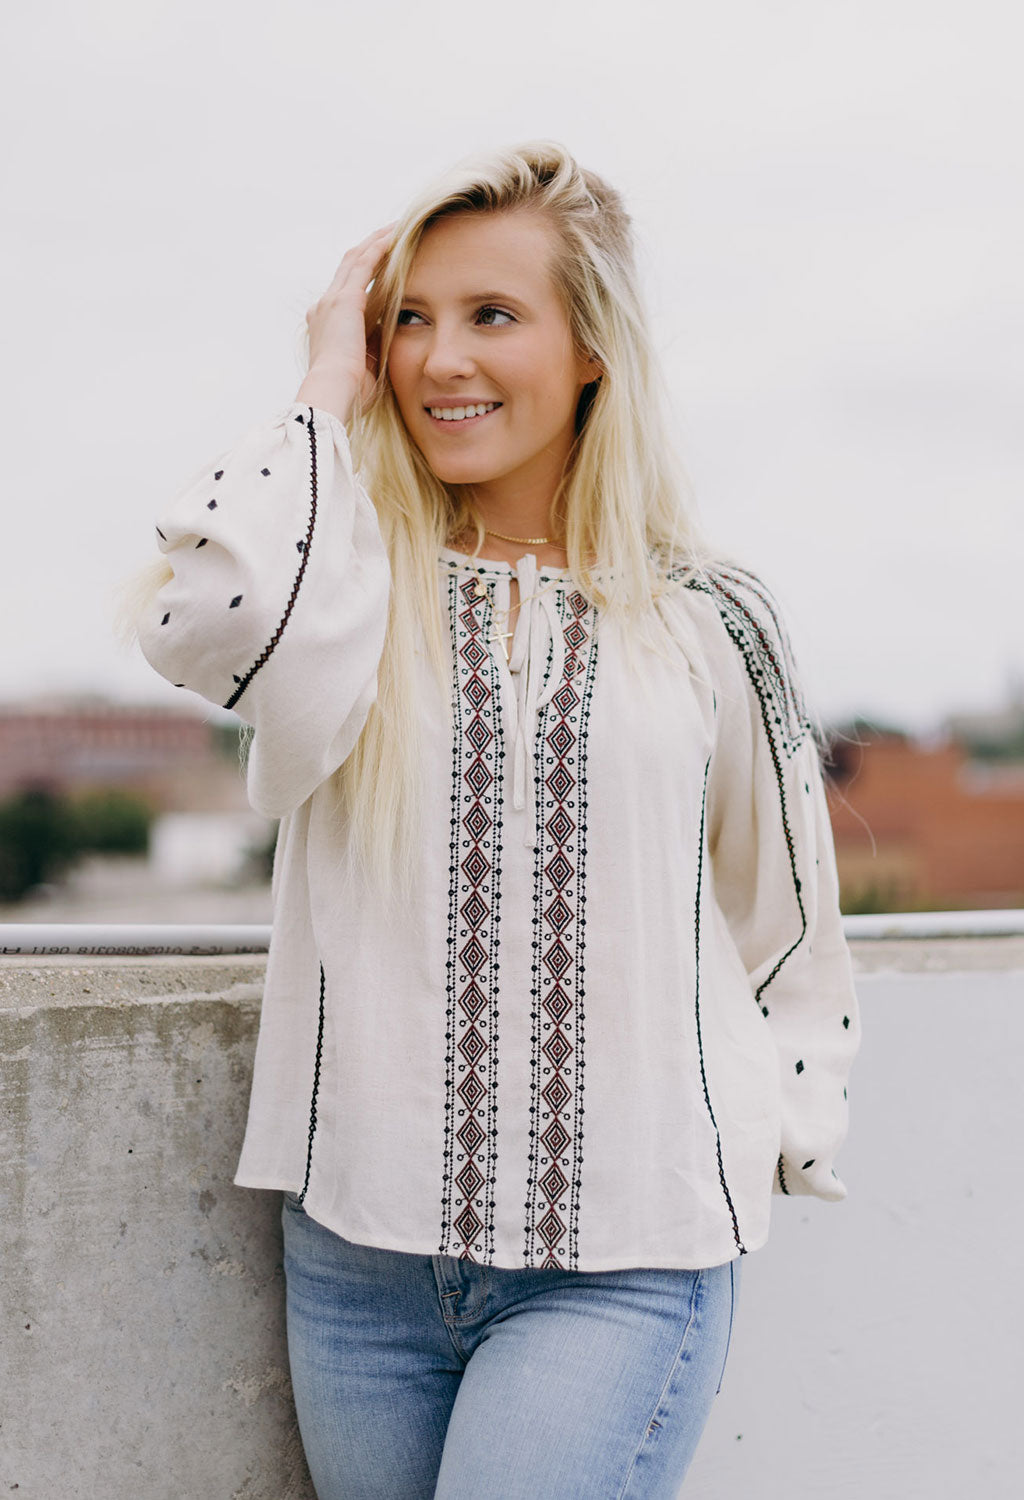 Erin Embroidered Top